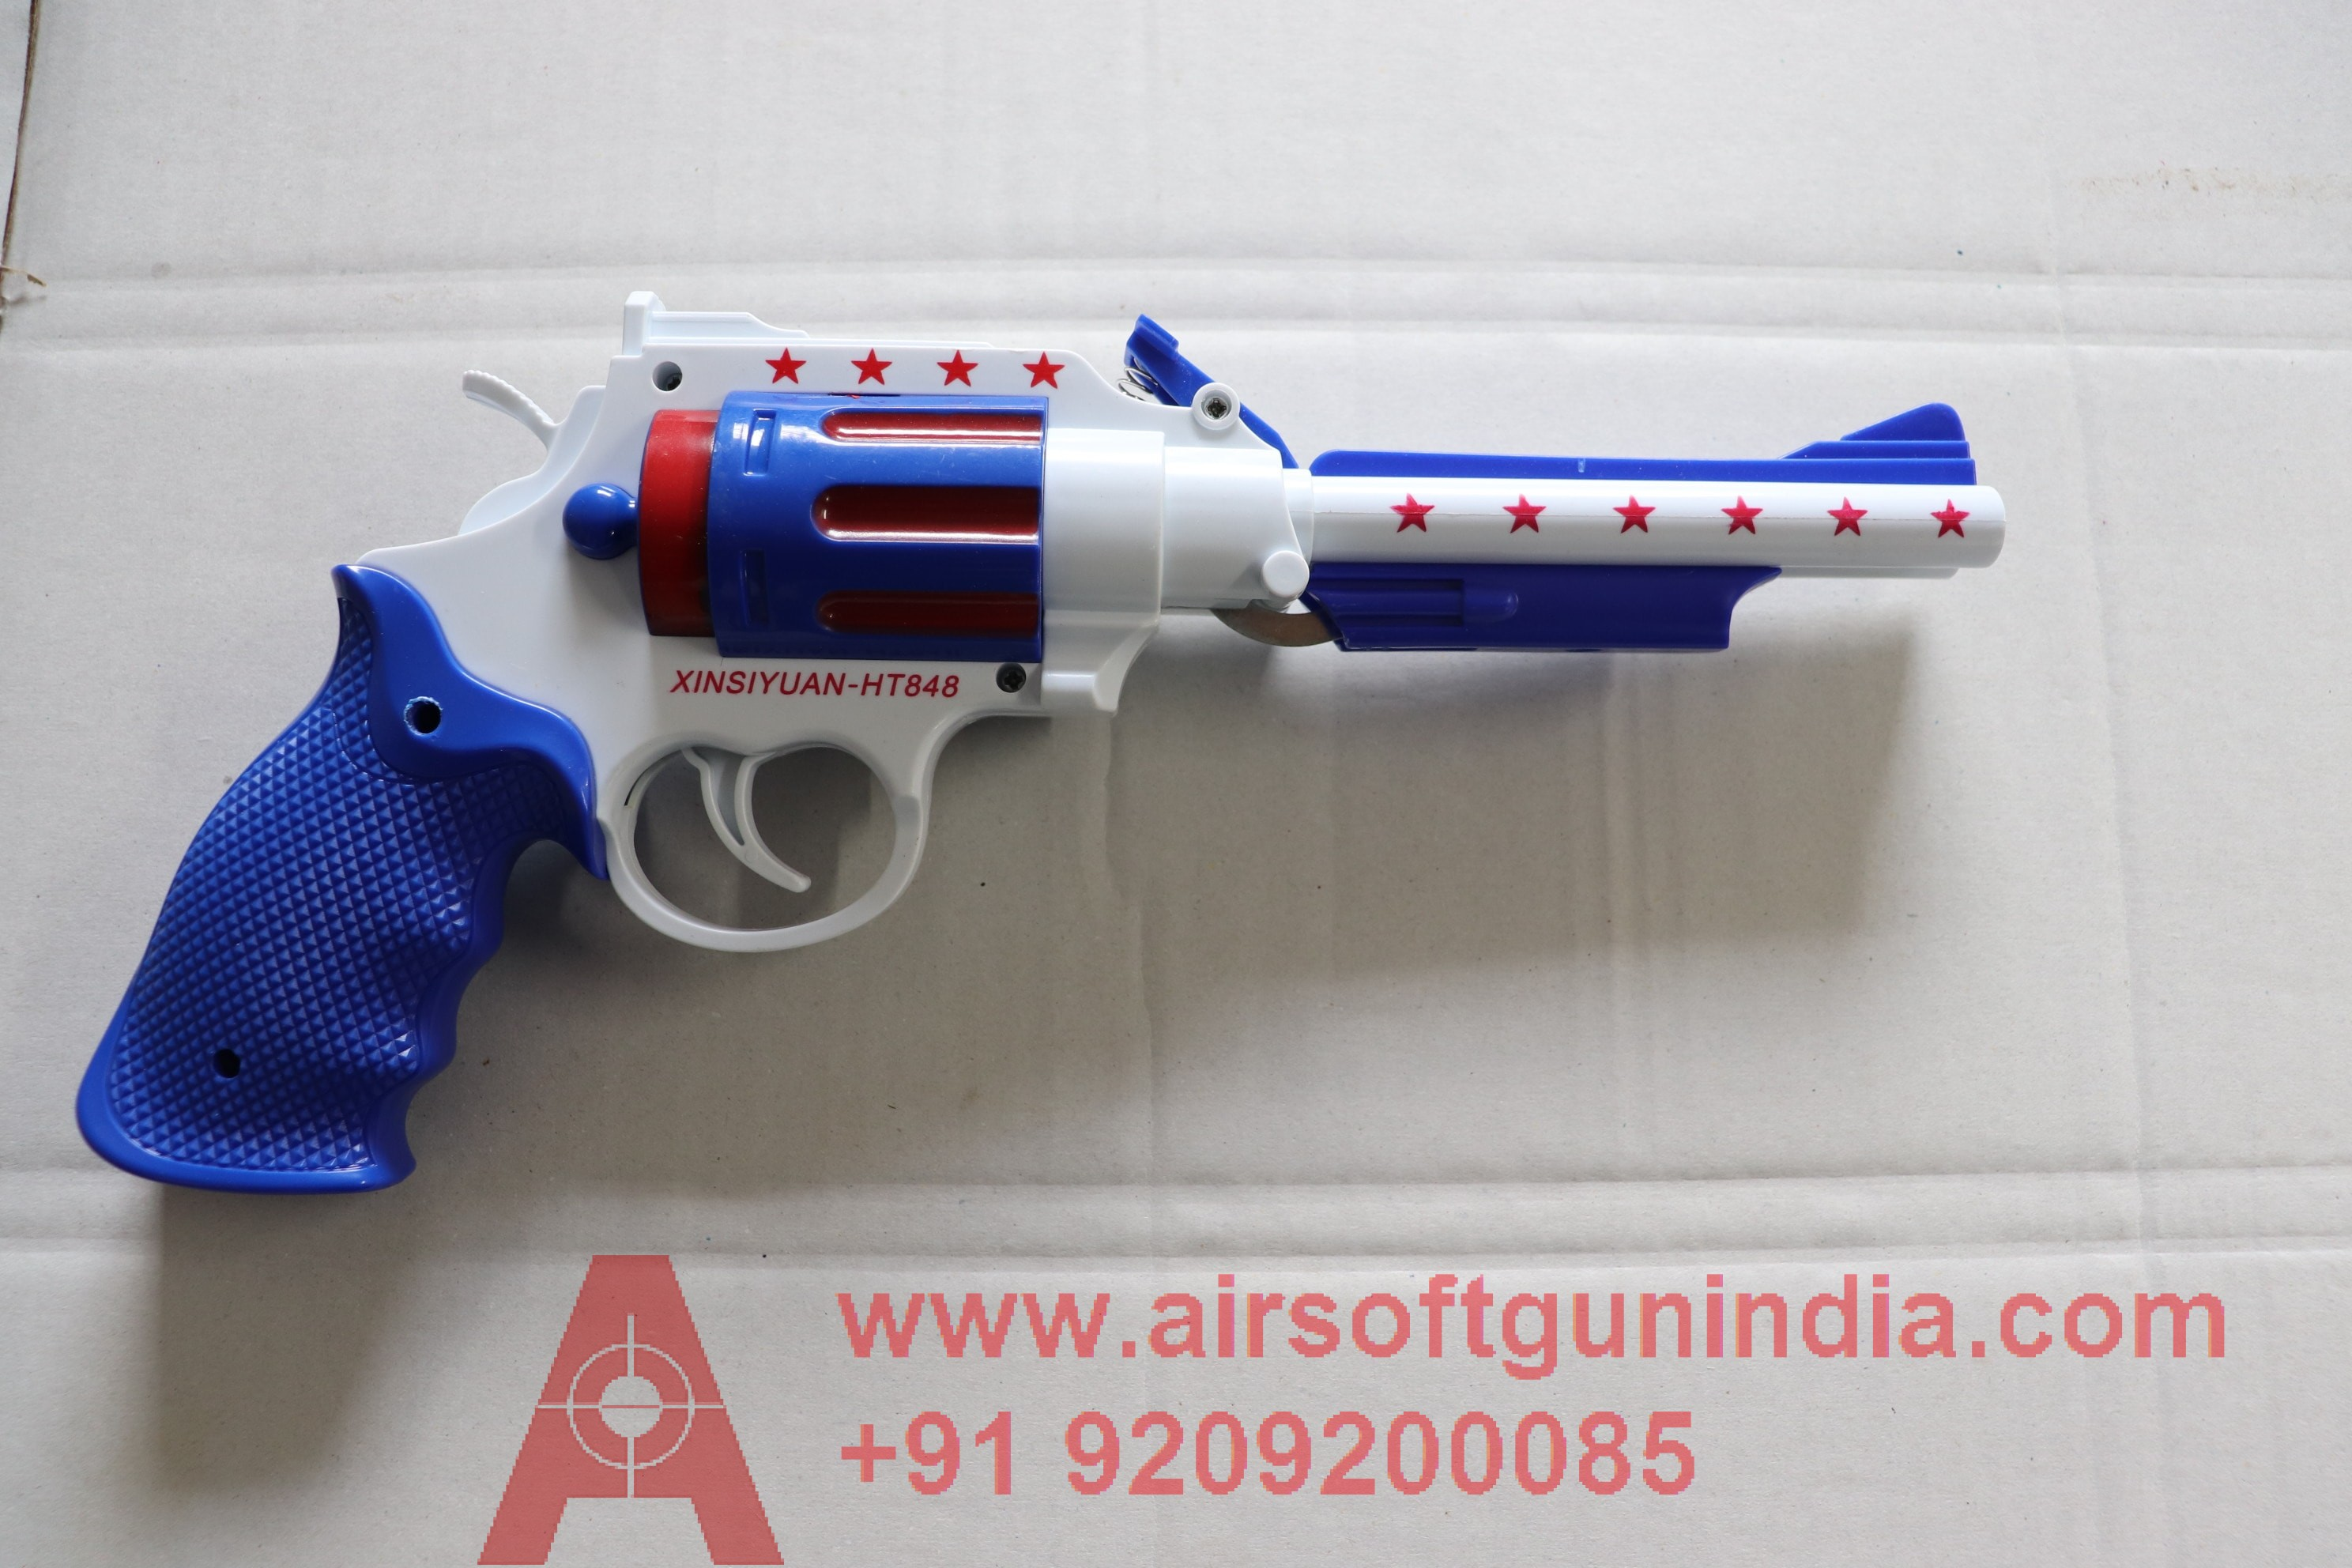 RUBBER BULLET DOUBLE BARREL PLASTIC REVOLVER TOY (BLUE)